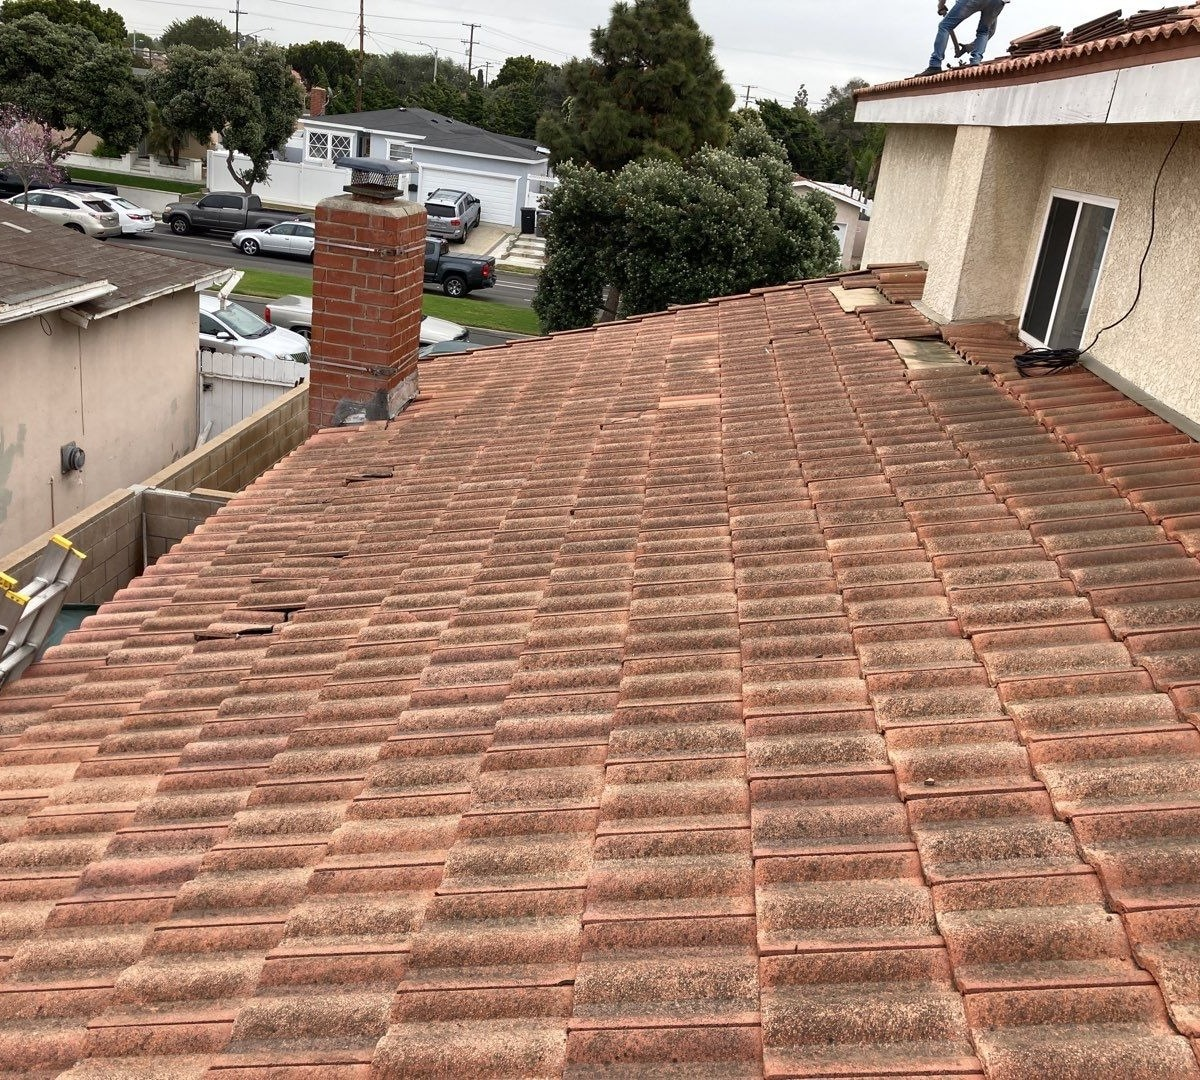 Residential Tile Re-Roof